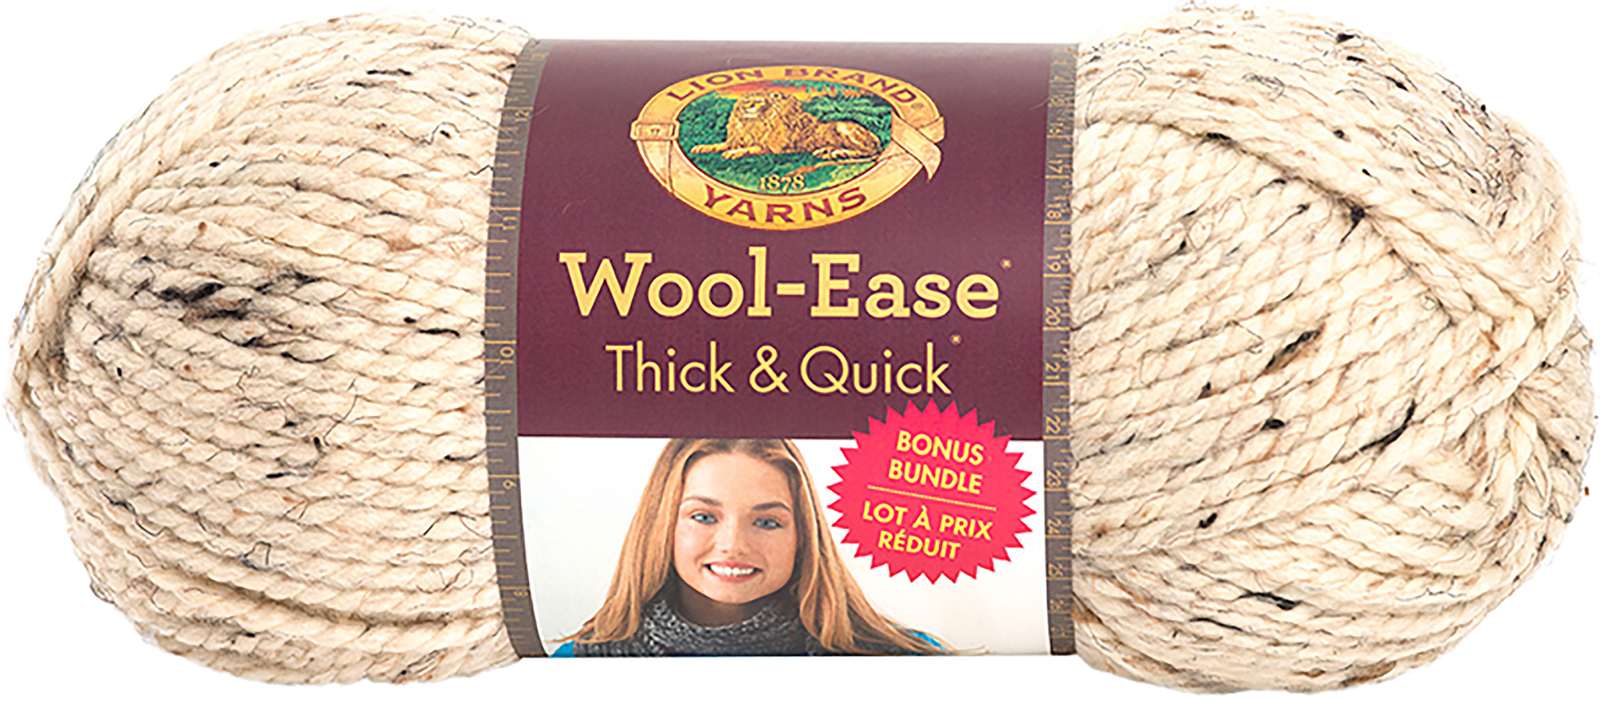 Lion Brand Wool-Ease Thick & Quick Bonus Bundle Yarn-Oatmeal - $24.34